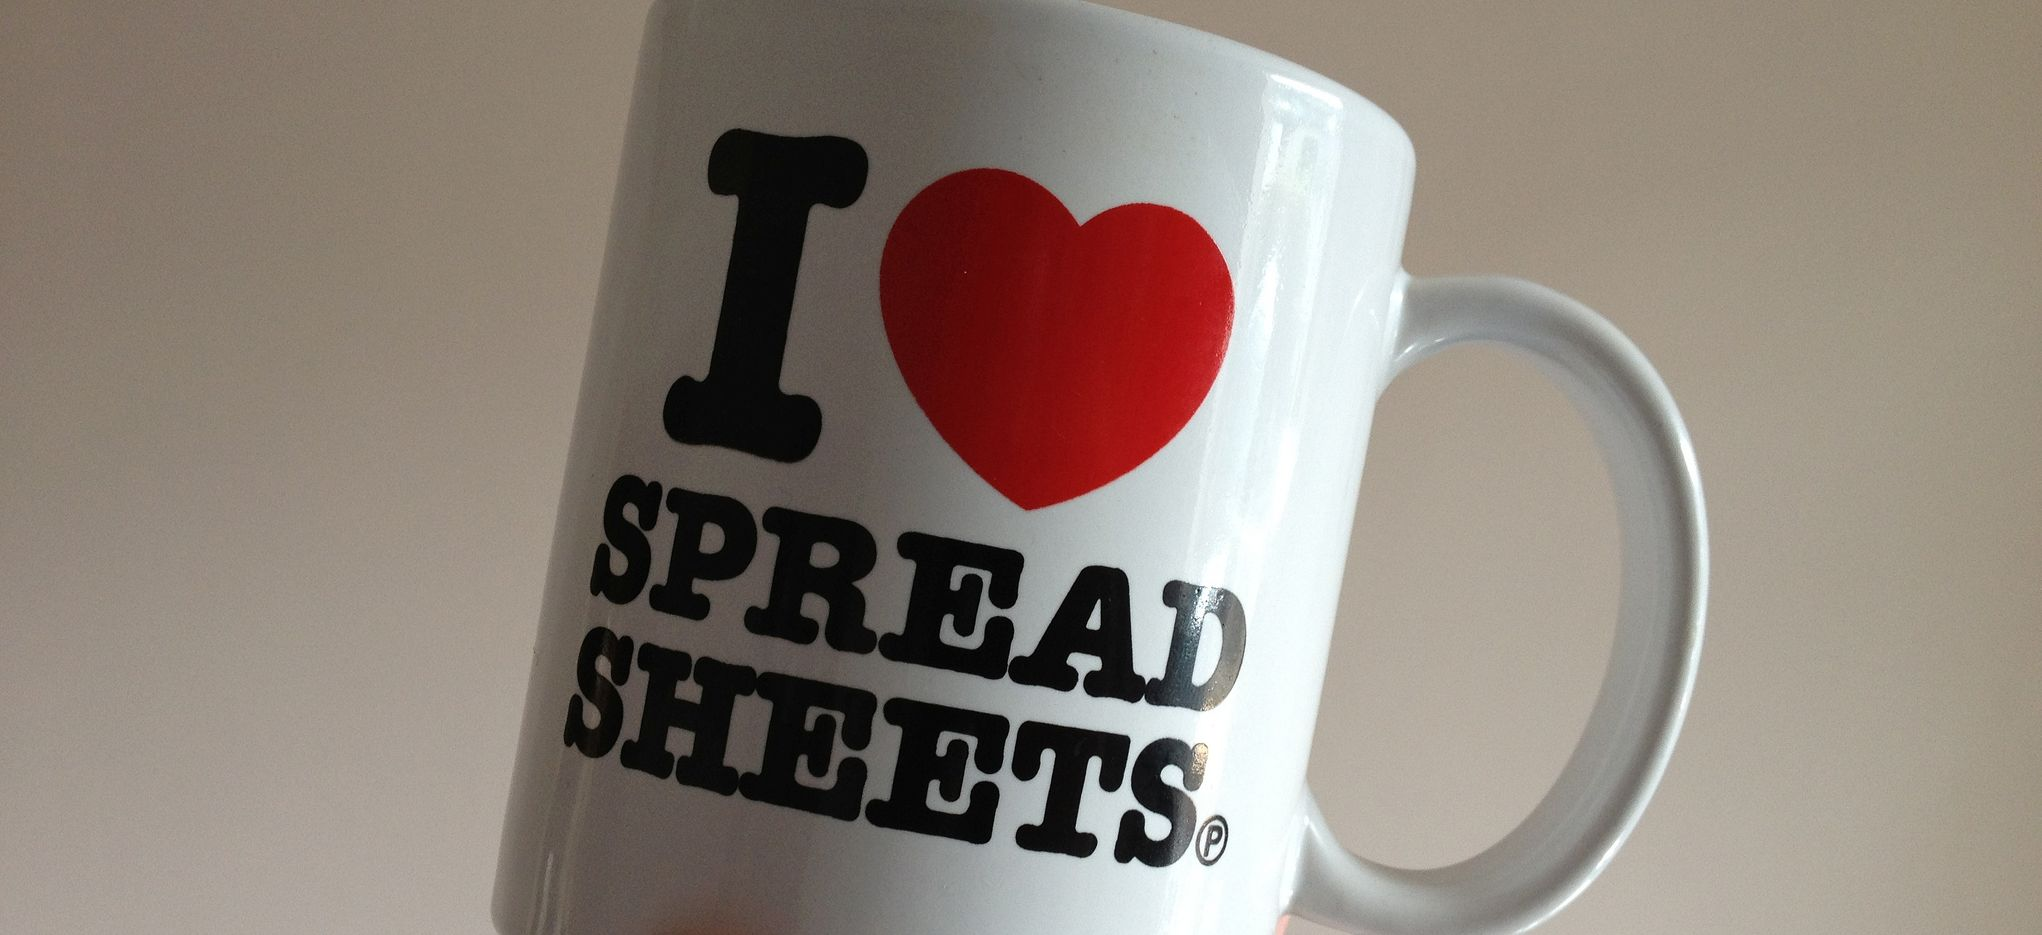 I Love Spreadsheets!